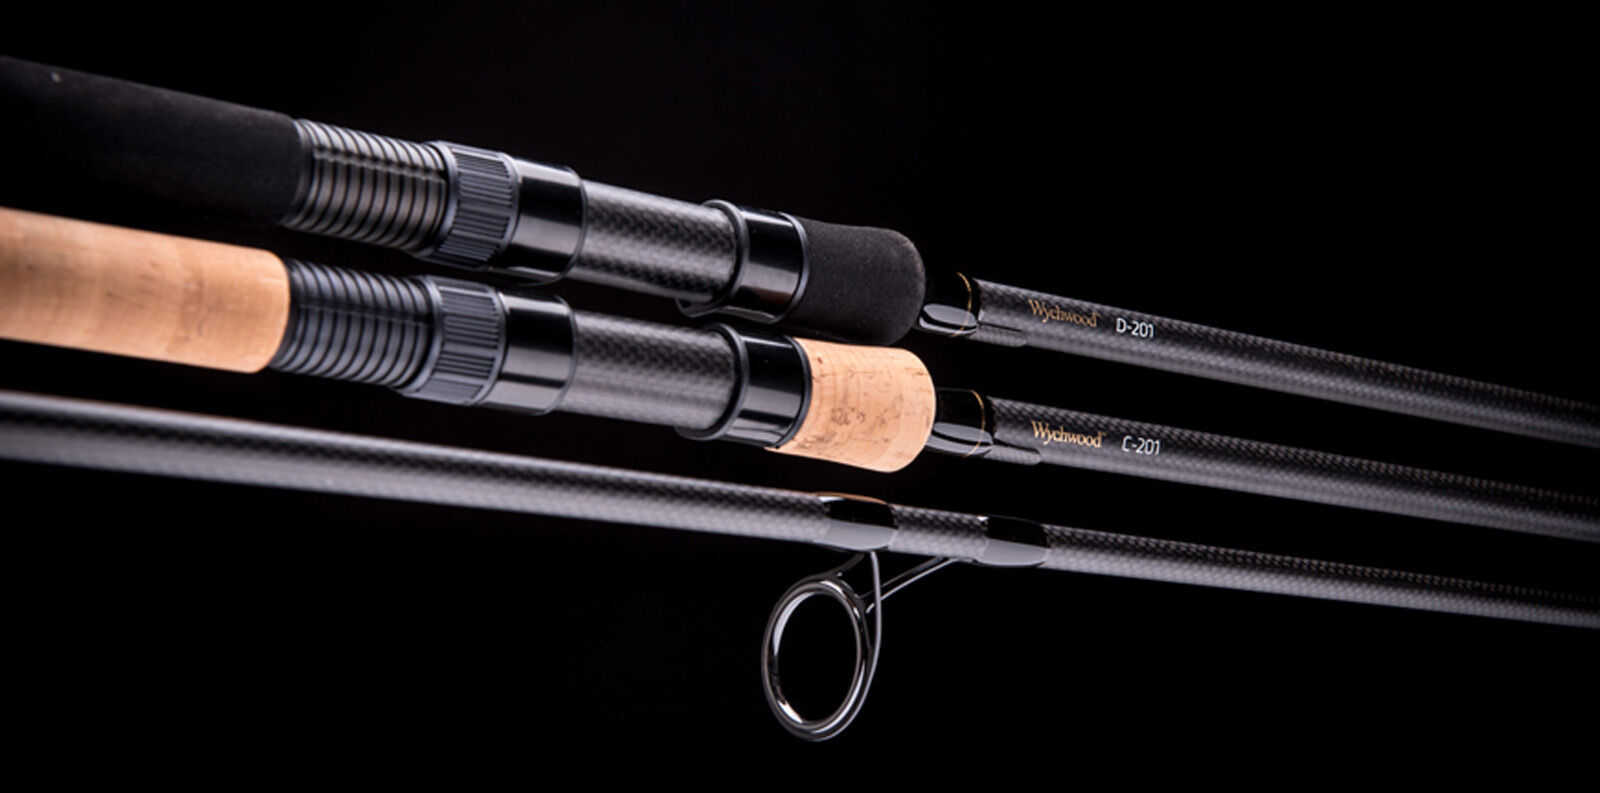 Wychwood Fishing Rod C-301 & D-301 Models Available - Cork or EVA Handle choice